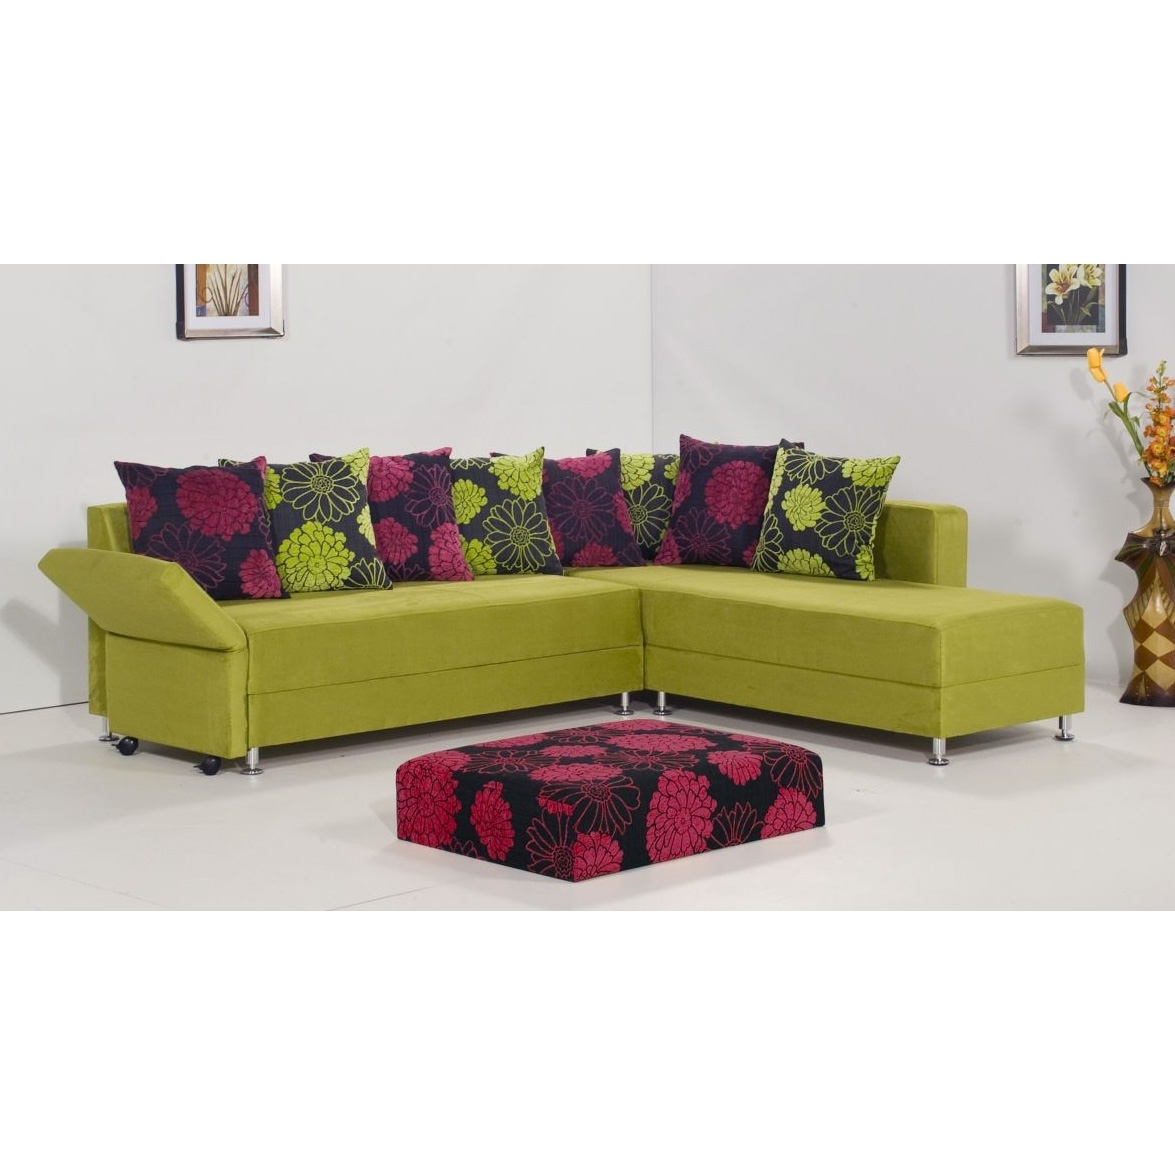 10 Collection Of Green Sectional Sofas